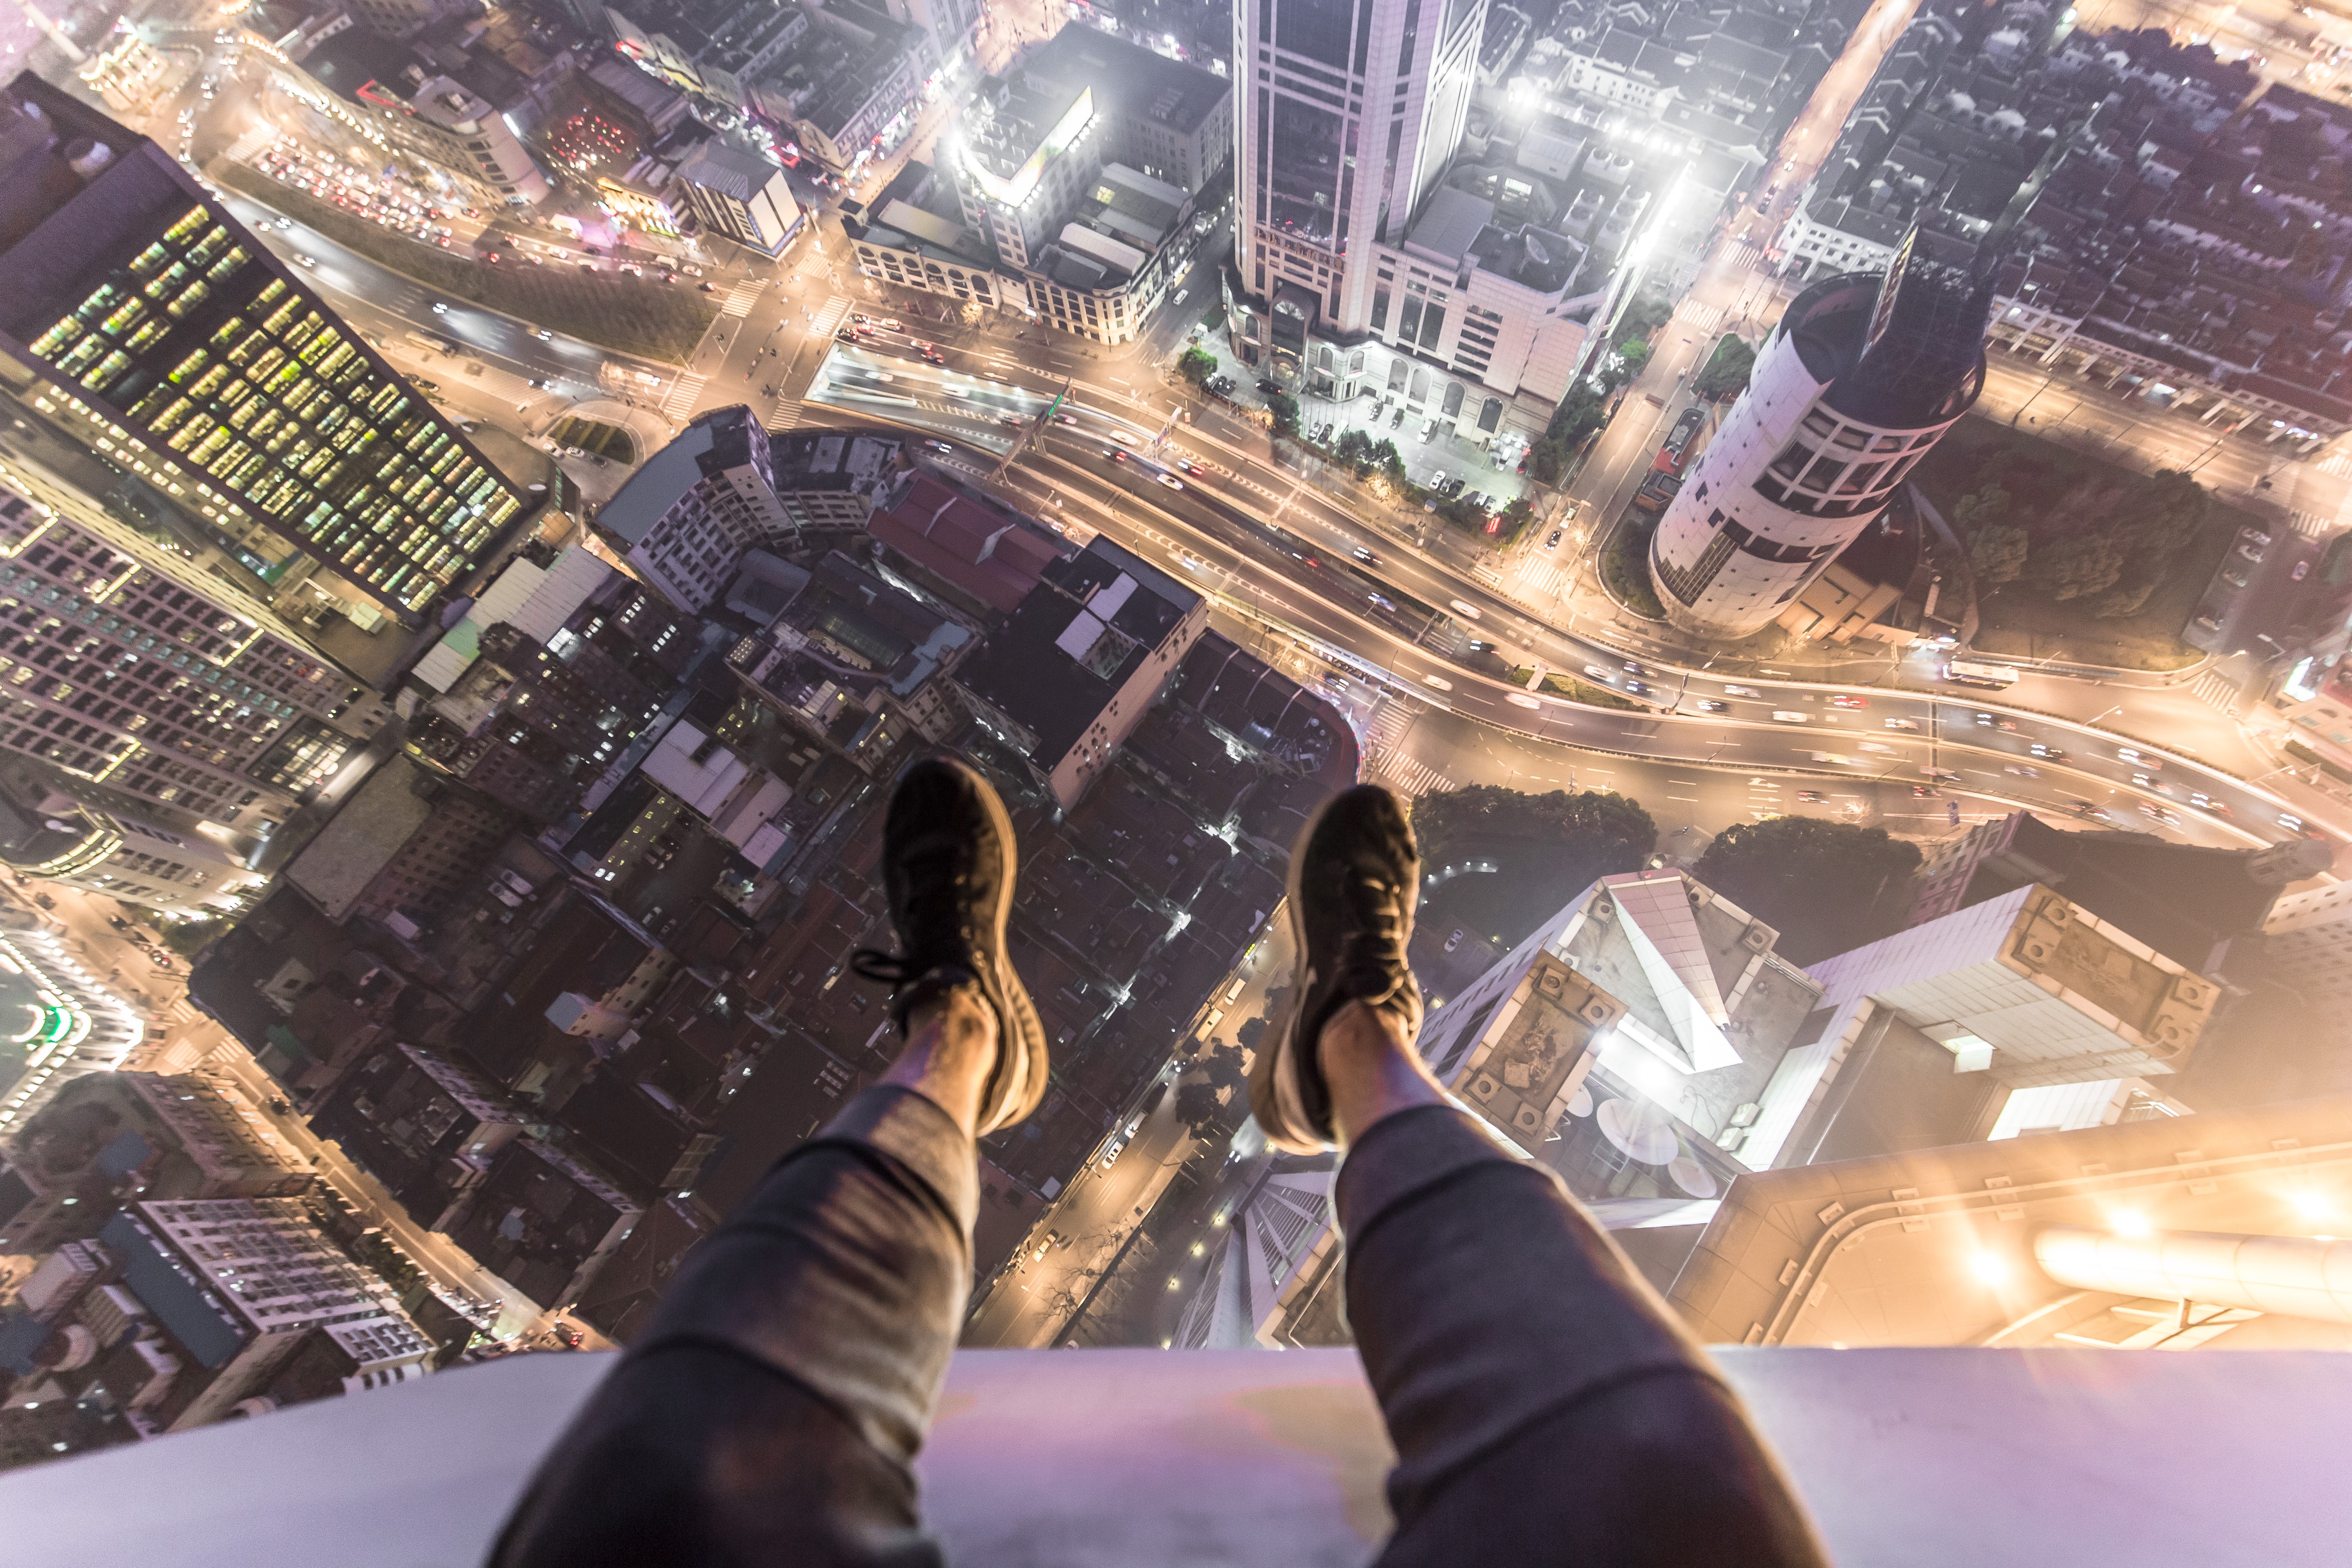 A person sitting on top of a skyscraper and dangling their legs over the edge.